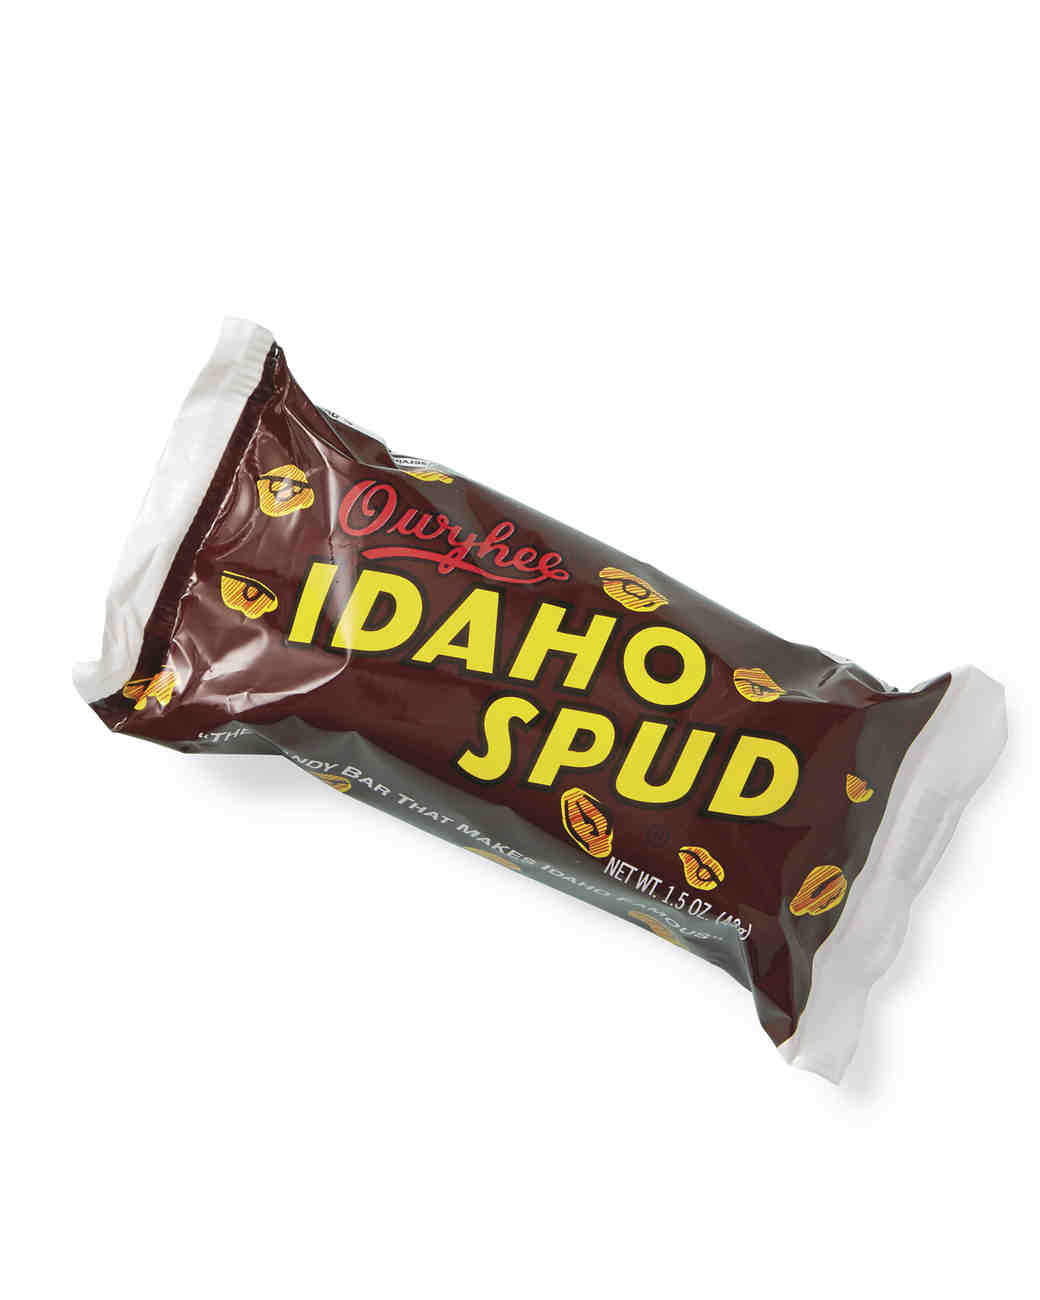 idaho-id-spud-one-043-d111965.jpg